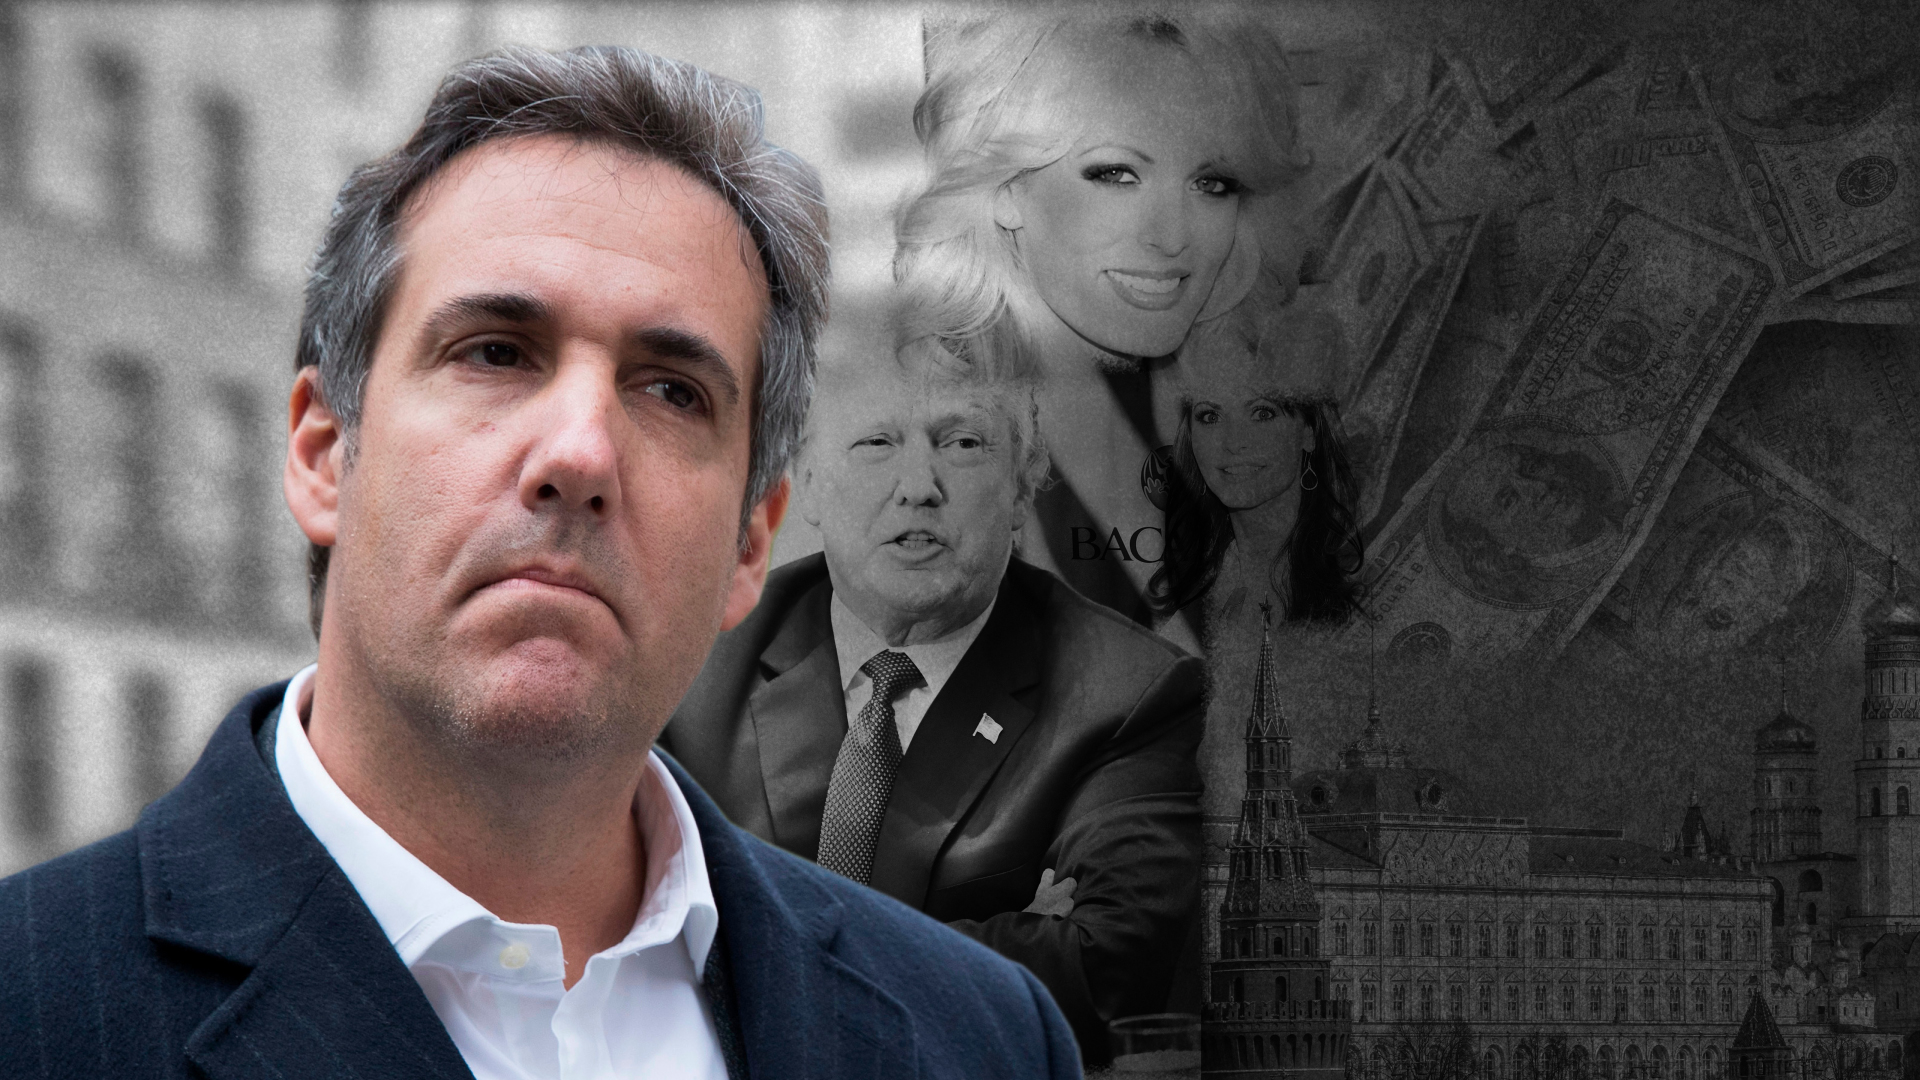 As critics attack his credibility, Cohen wants to 'let the American people decide exactly who's telling the truth'